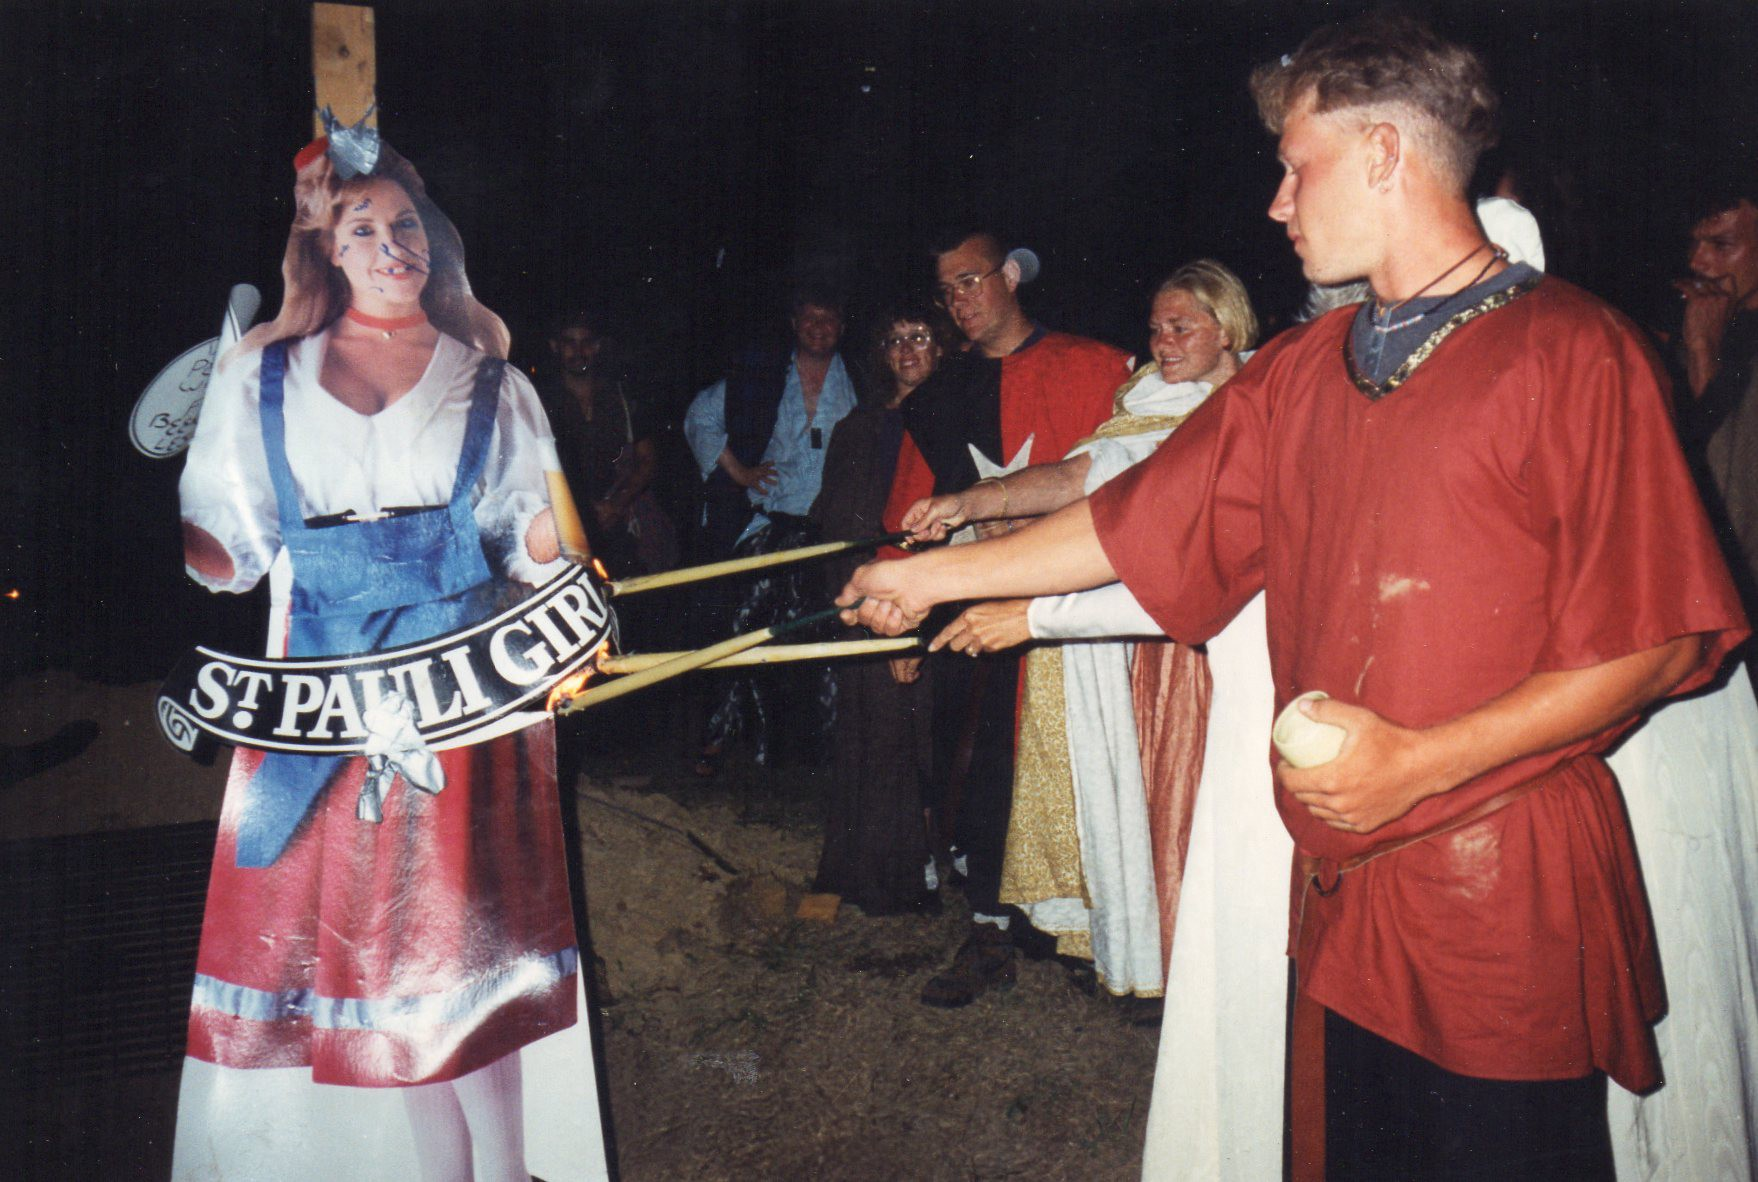 Old 1993 photograph at a party of people dressed in medieval clothes burning a St. Pauli Girl standout at a party